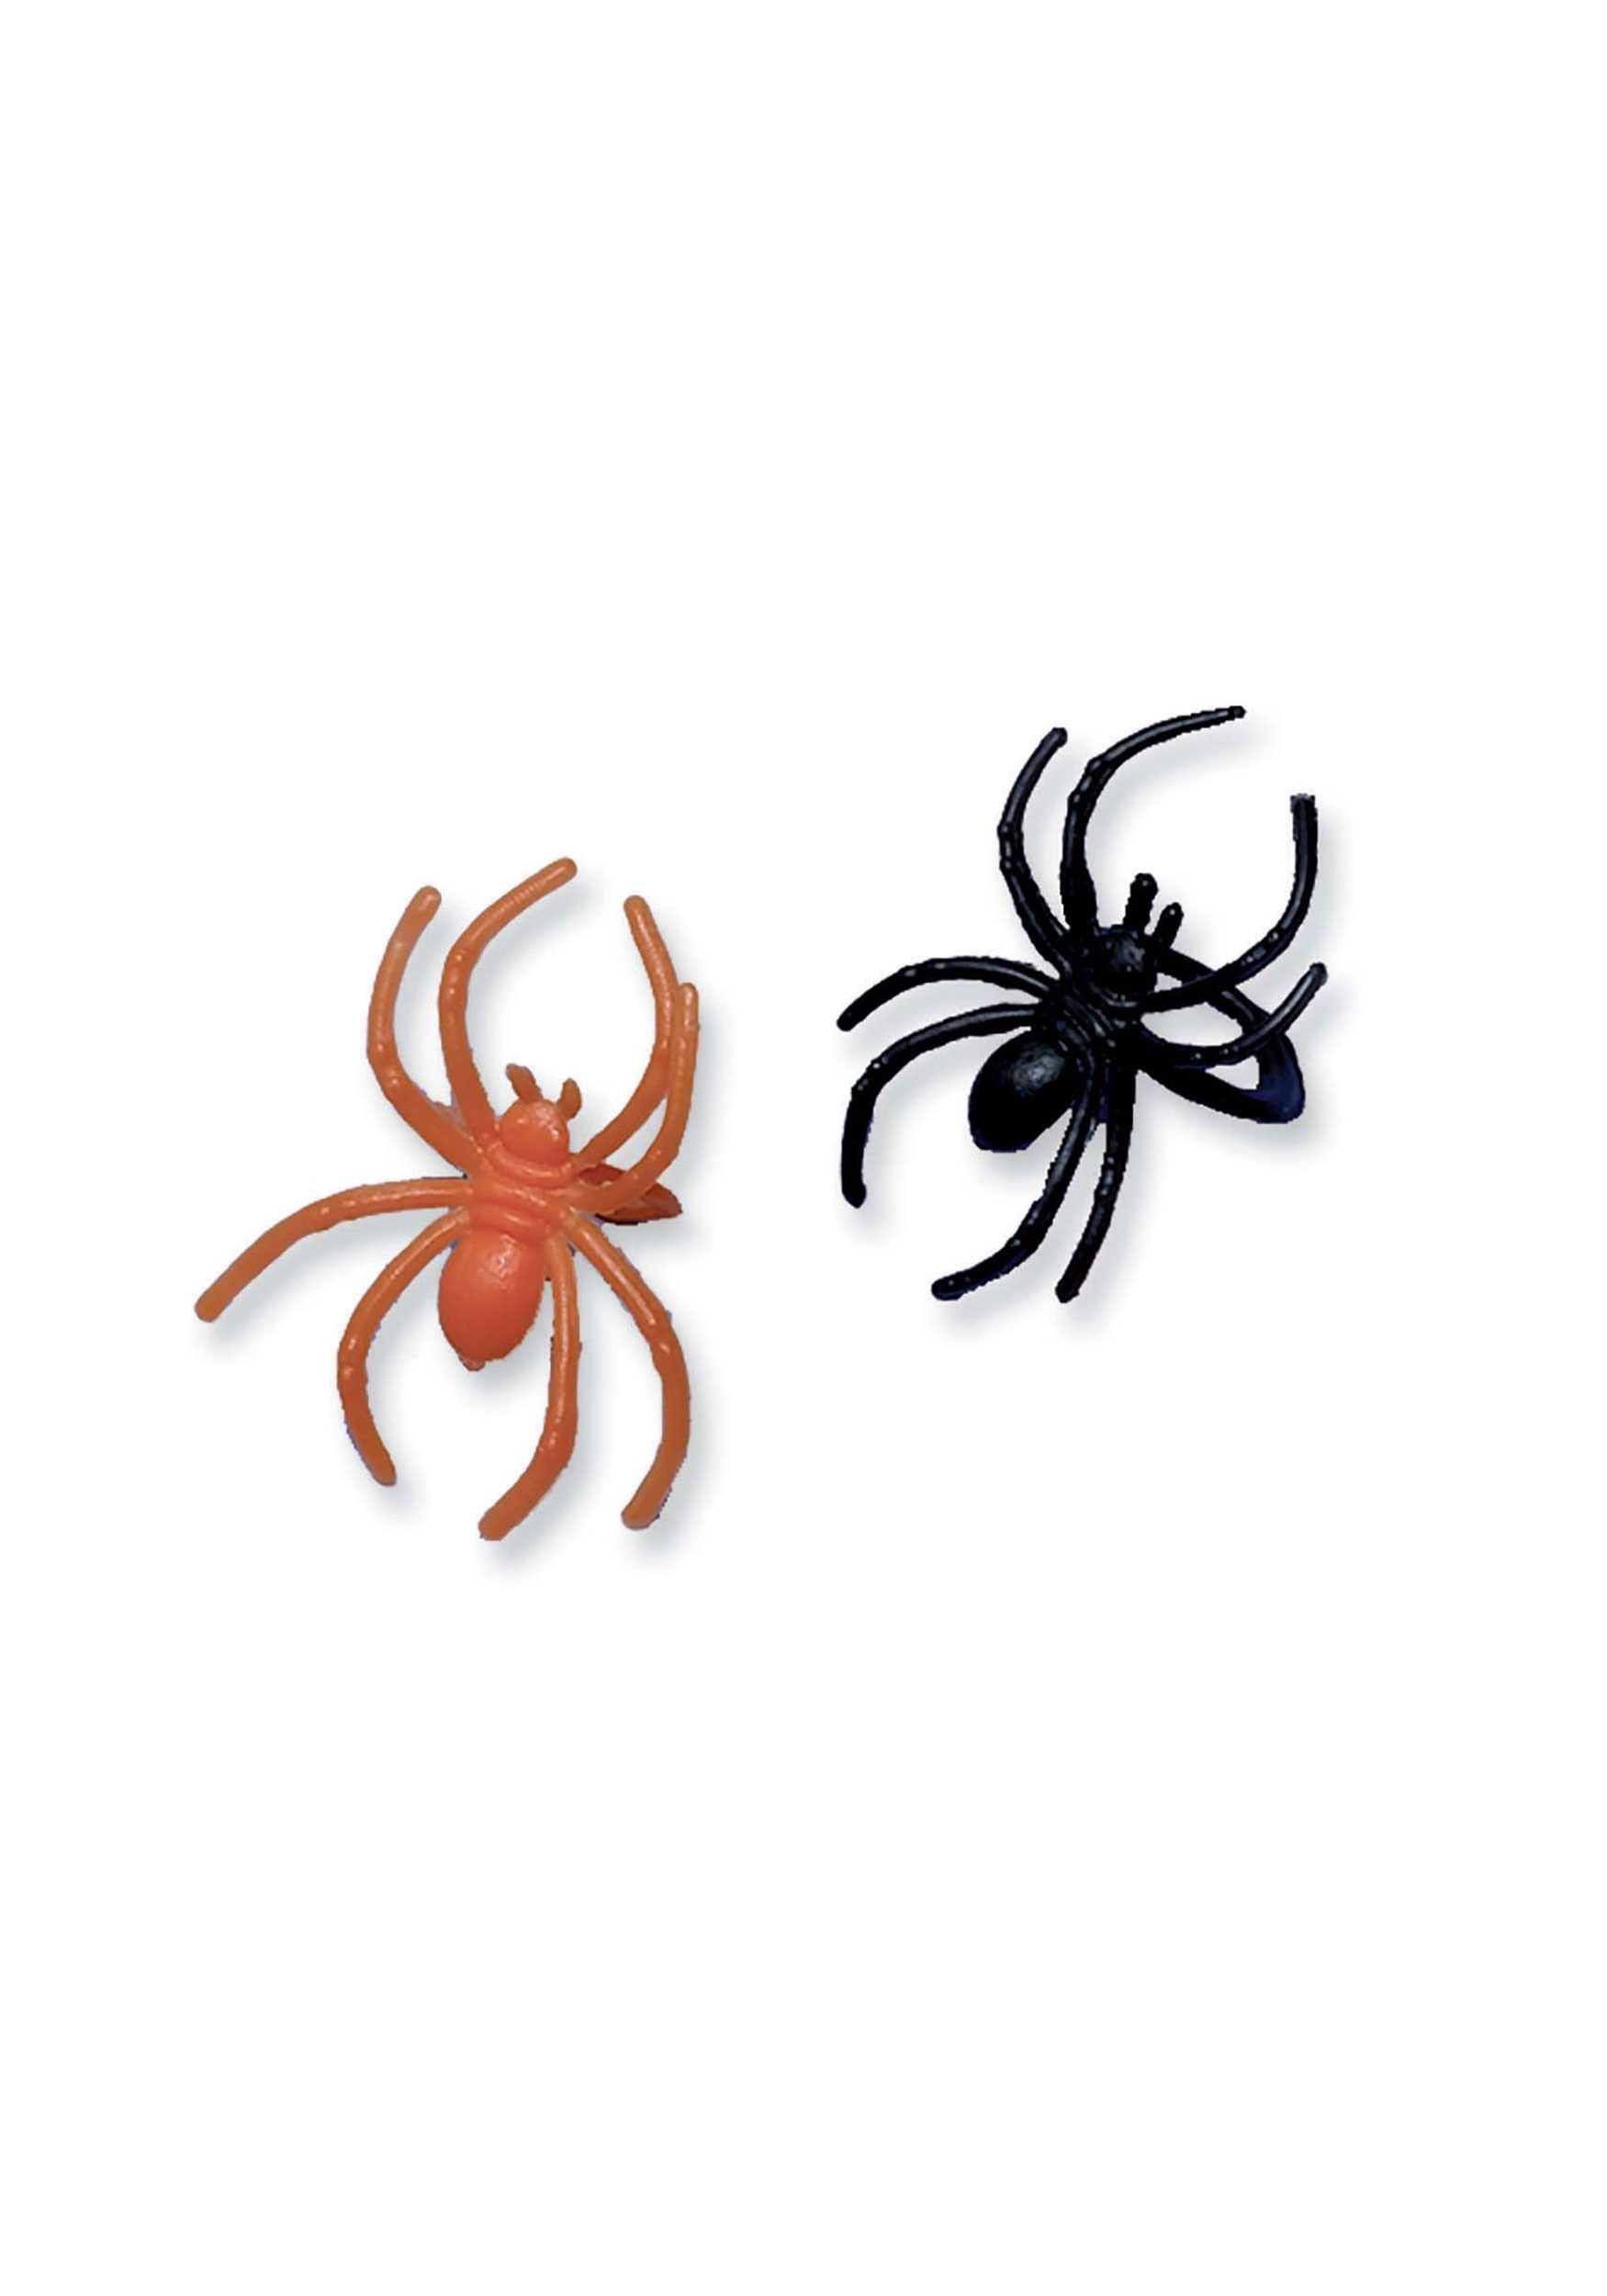 Black_&_Orange_Spider_Rings_pack_of_30_rings